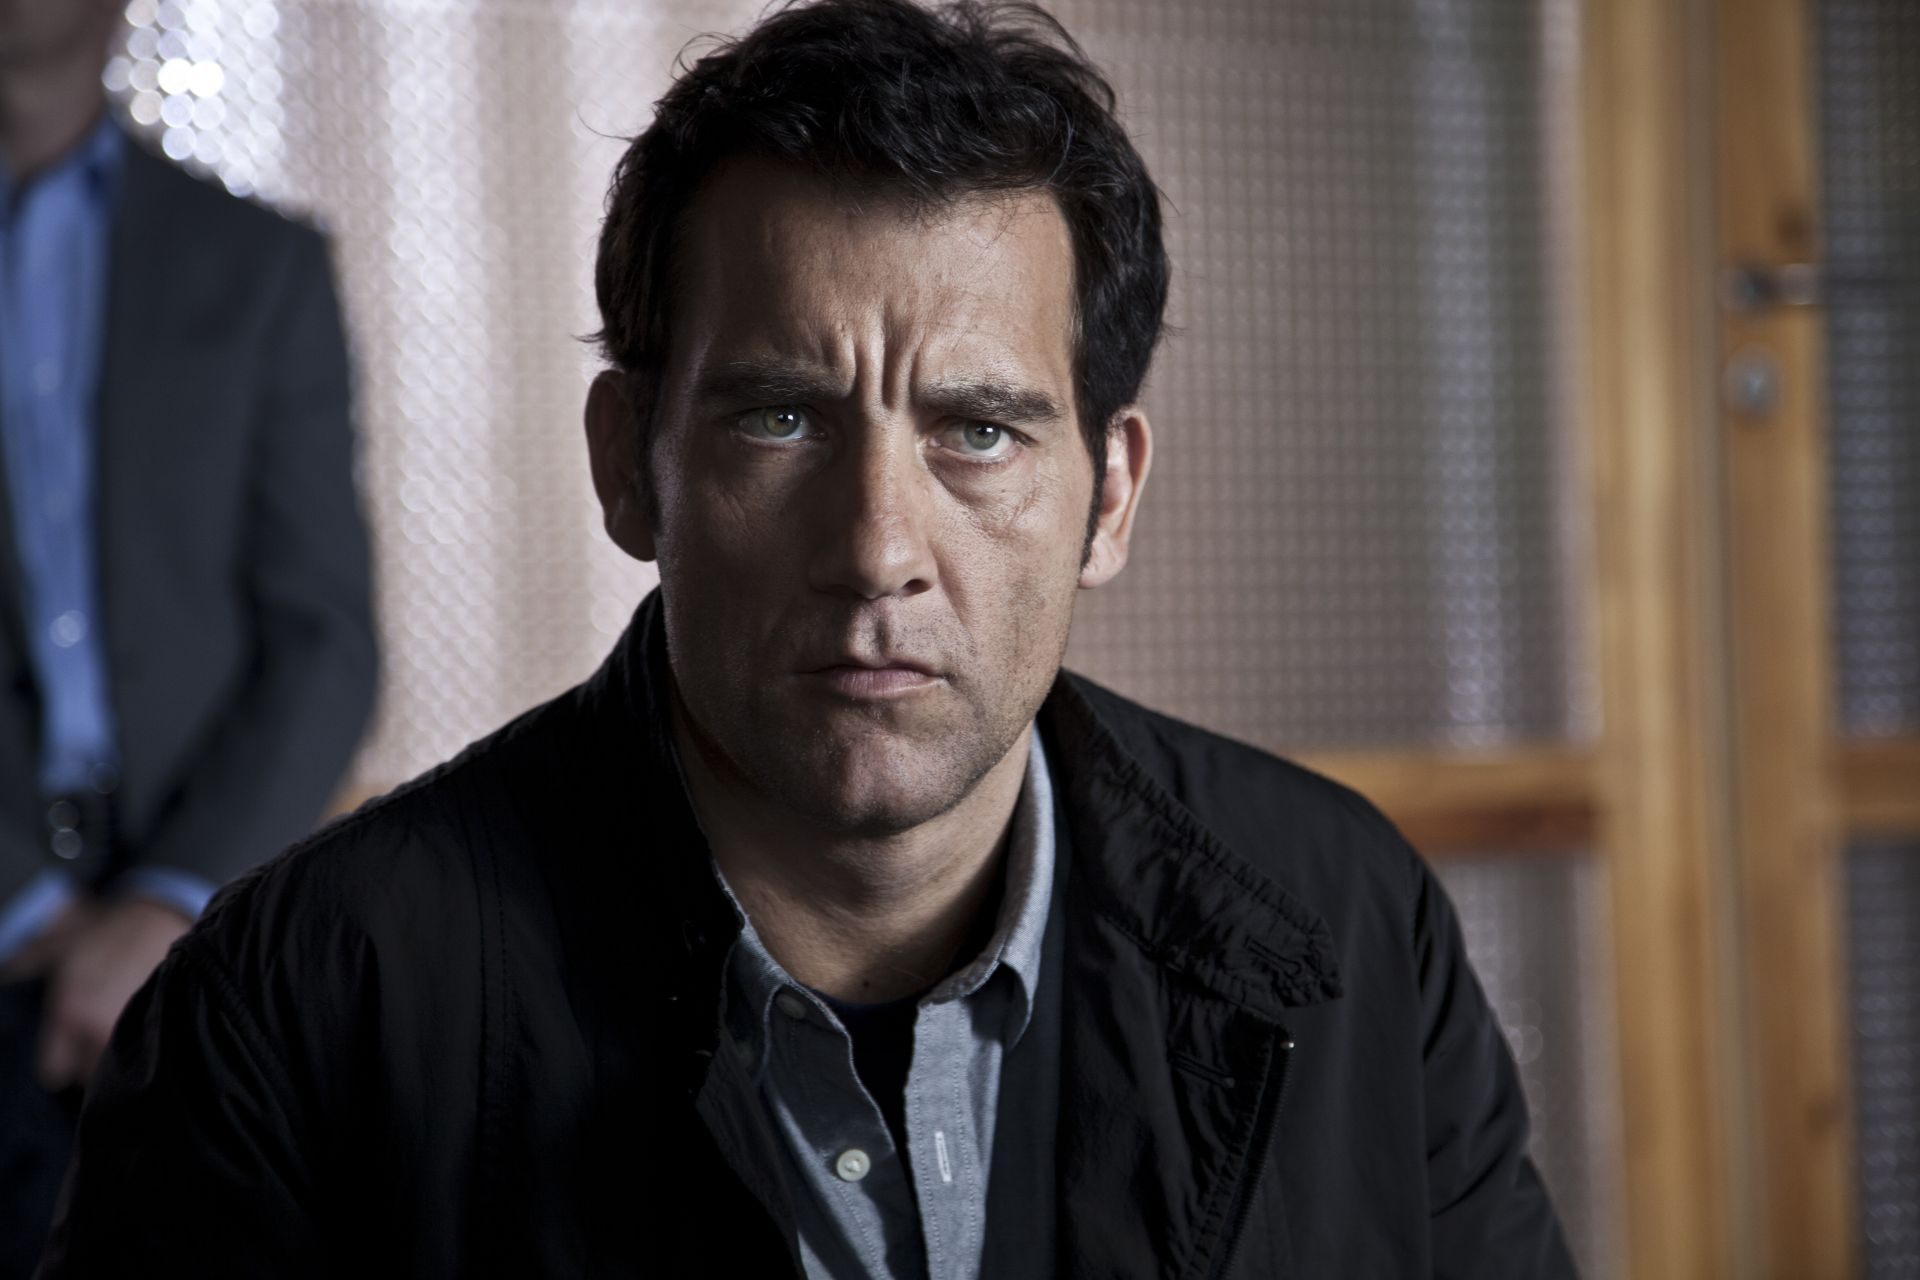 1920x1280 - Clive Owen  Wallpapers 20